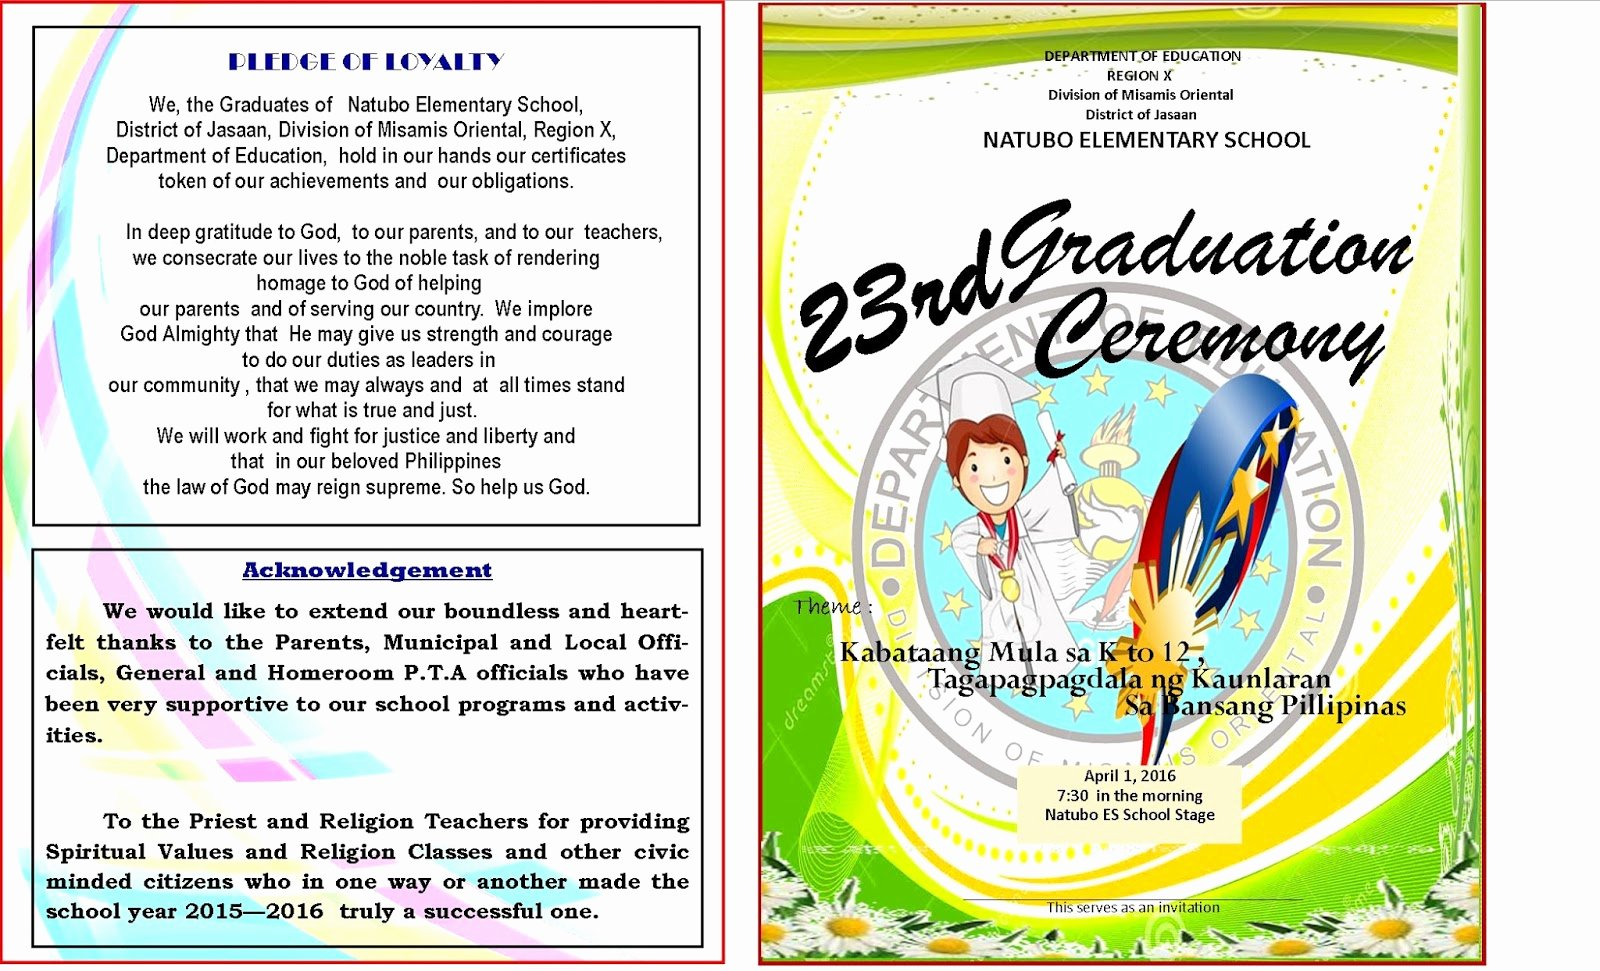 Graduation Program Template Word Unique 2015 2016 Graduation Program New Template Deped Lp S